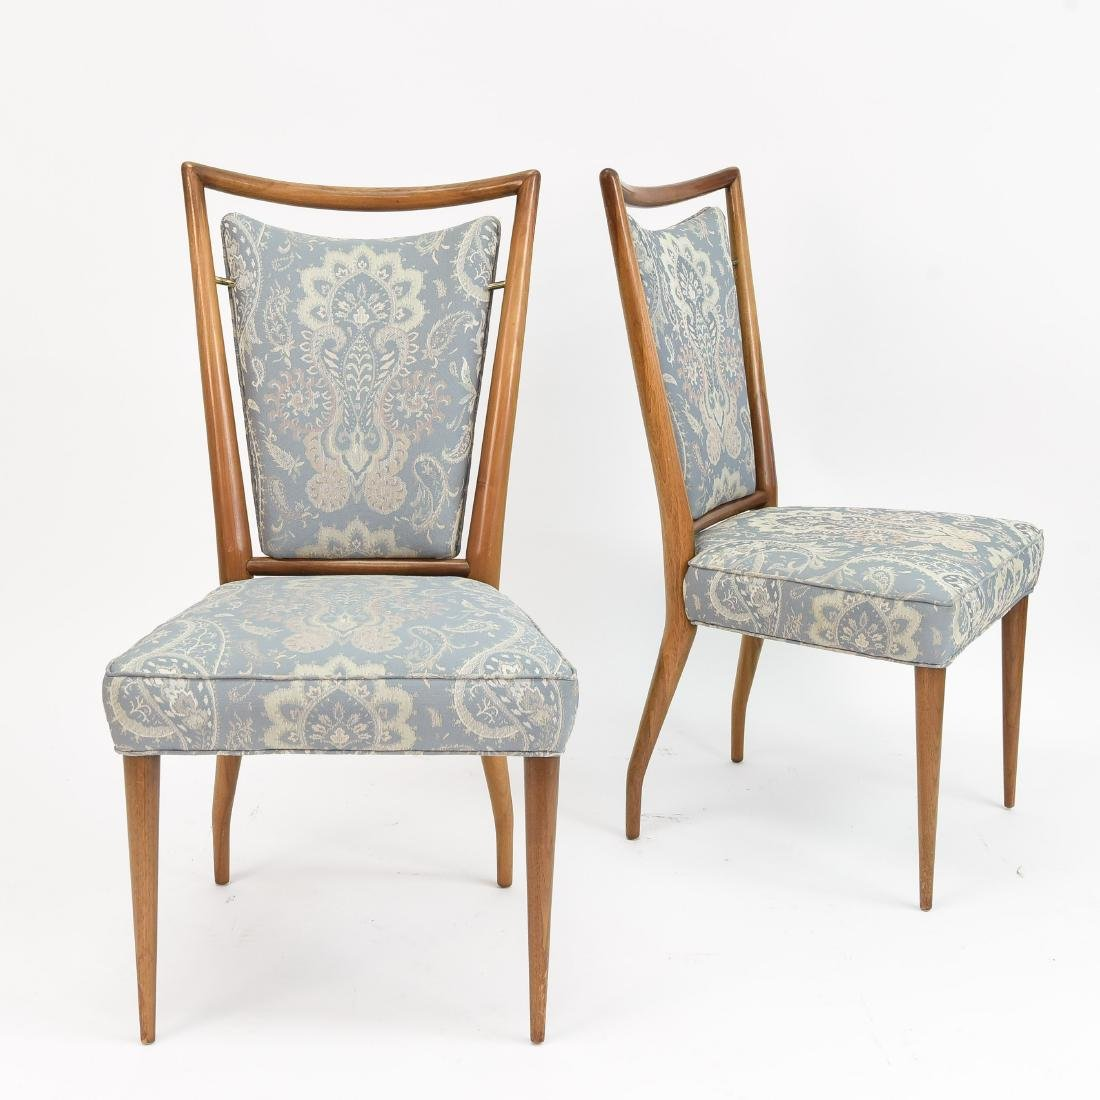 MANNER OF MELCHIORRE BEGA CHAIRS